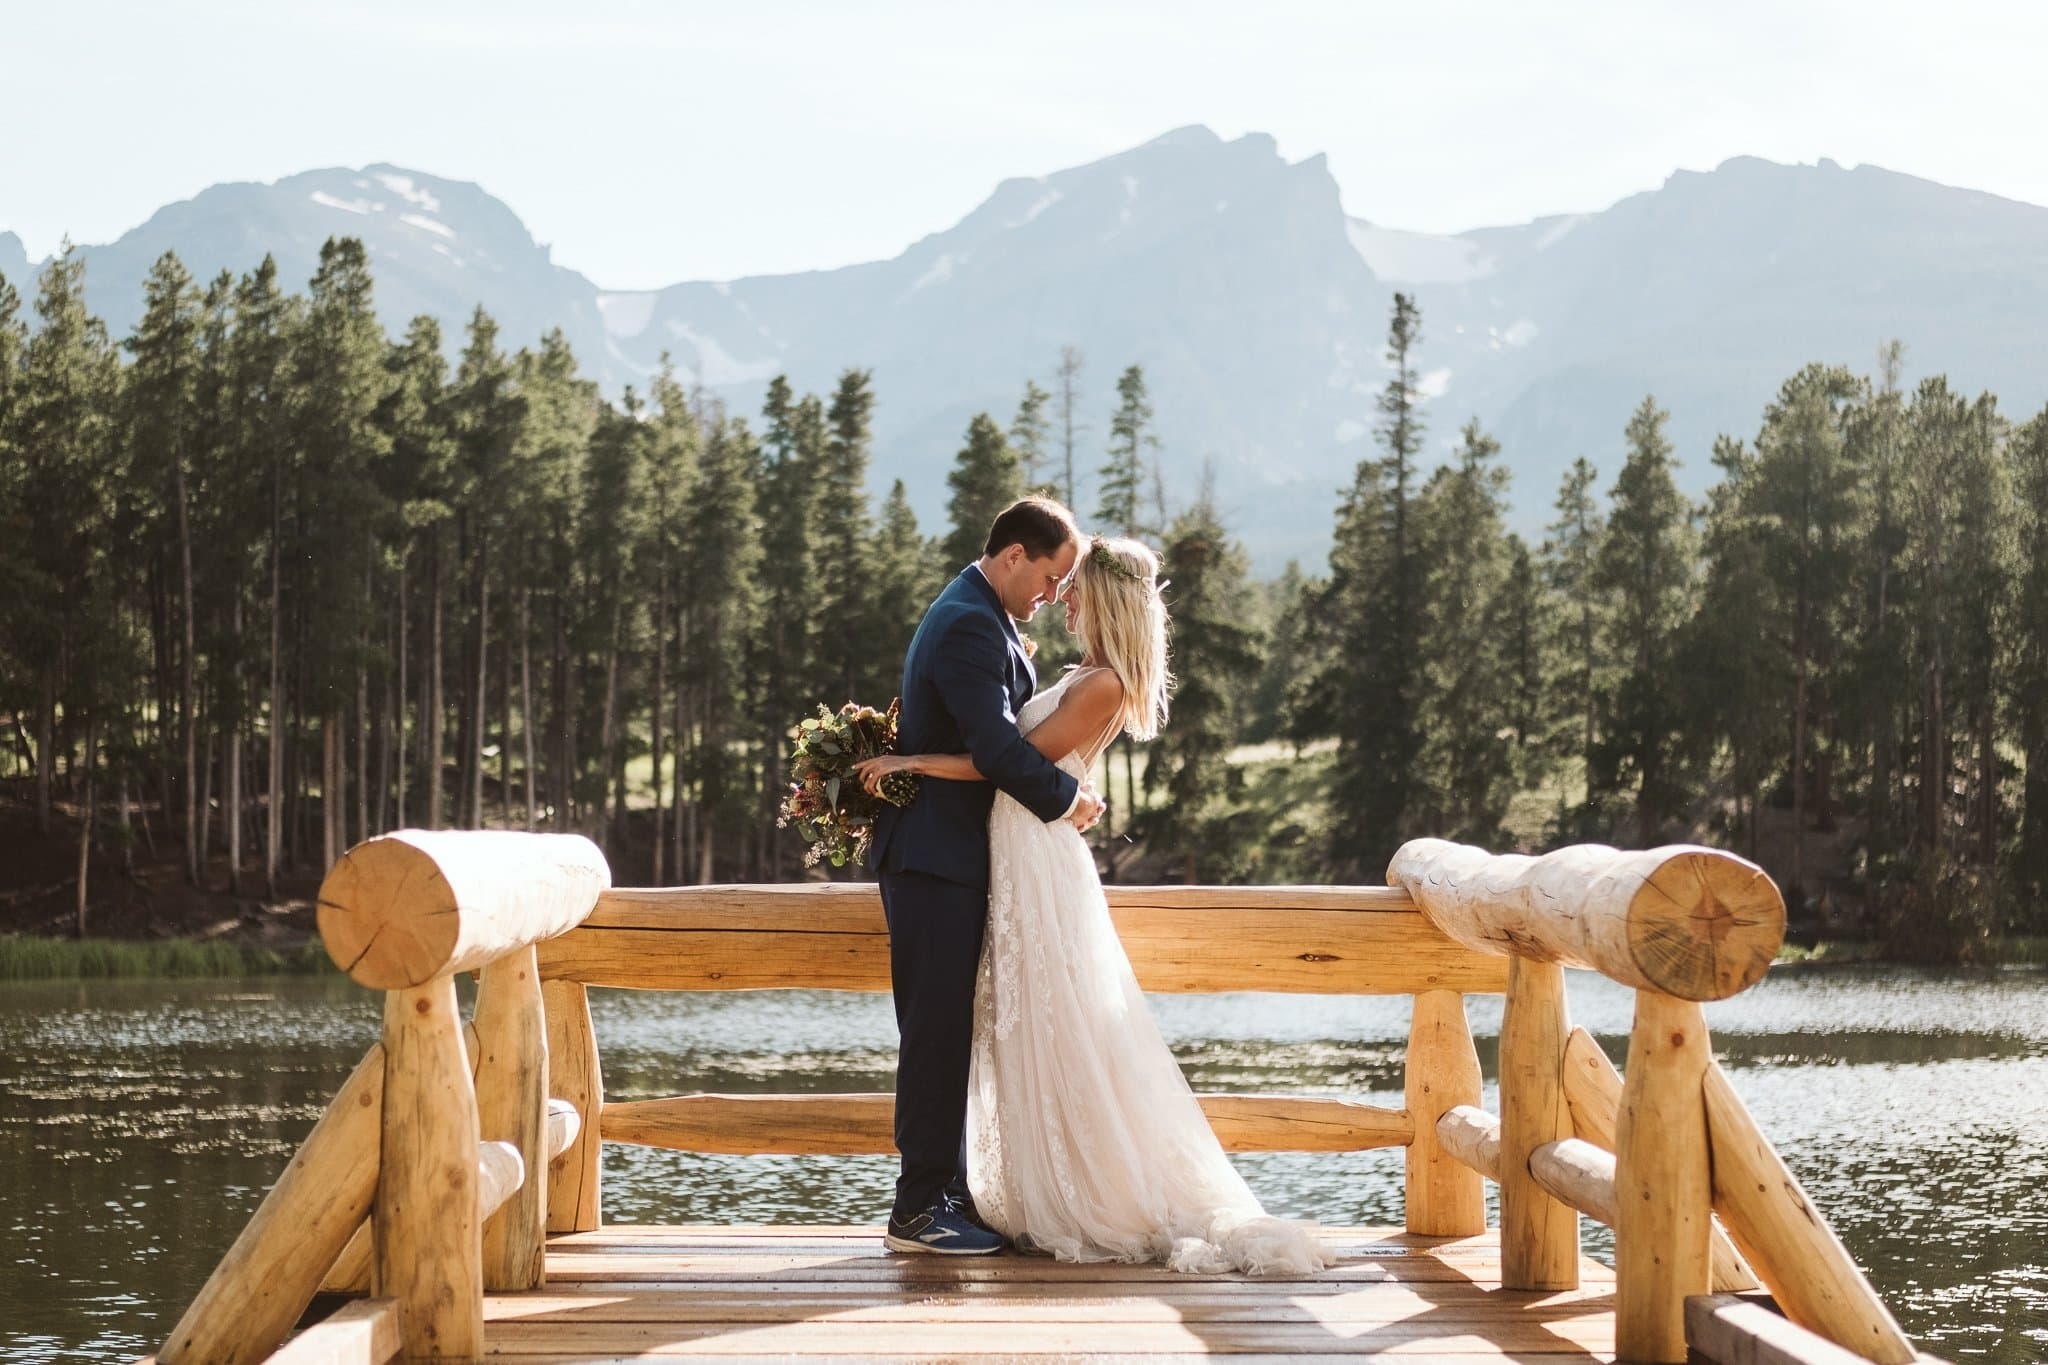 Sprague Lake elopement photos in Rocky Mountain National Park, Colorado elopement photographer